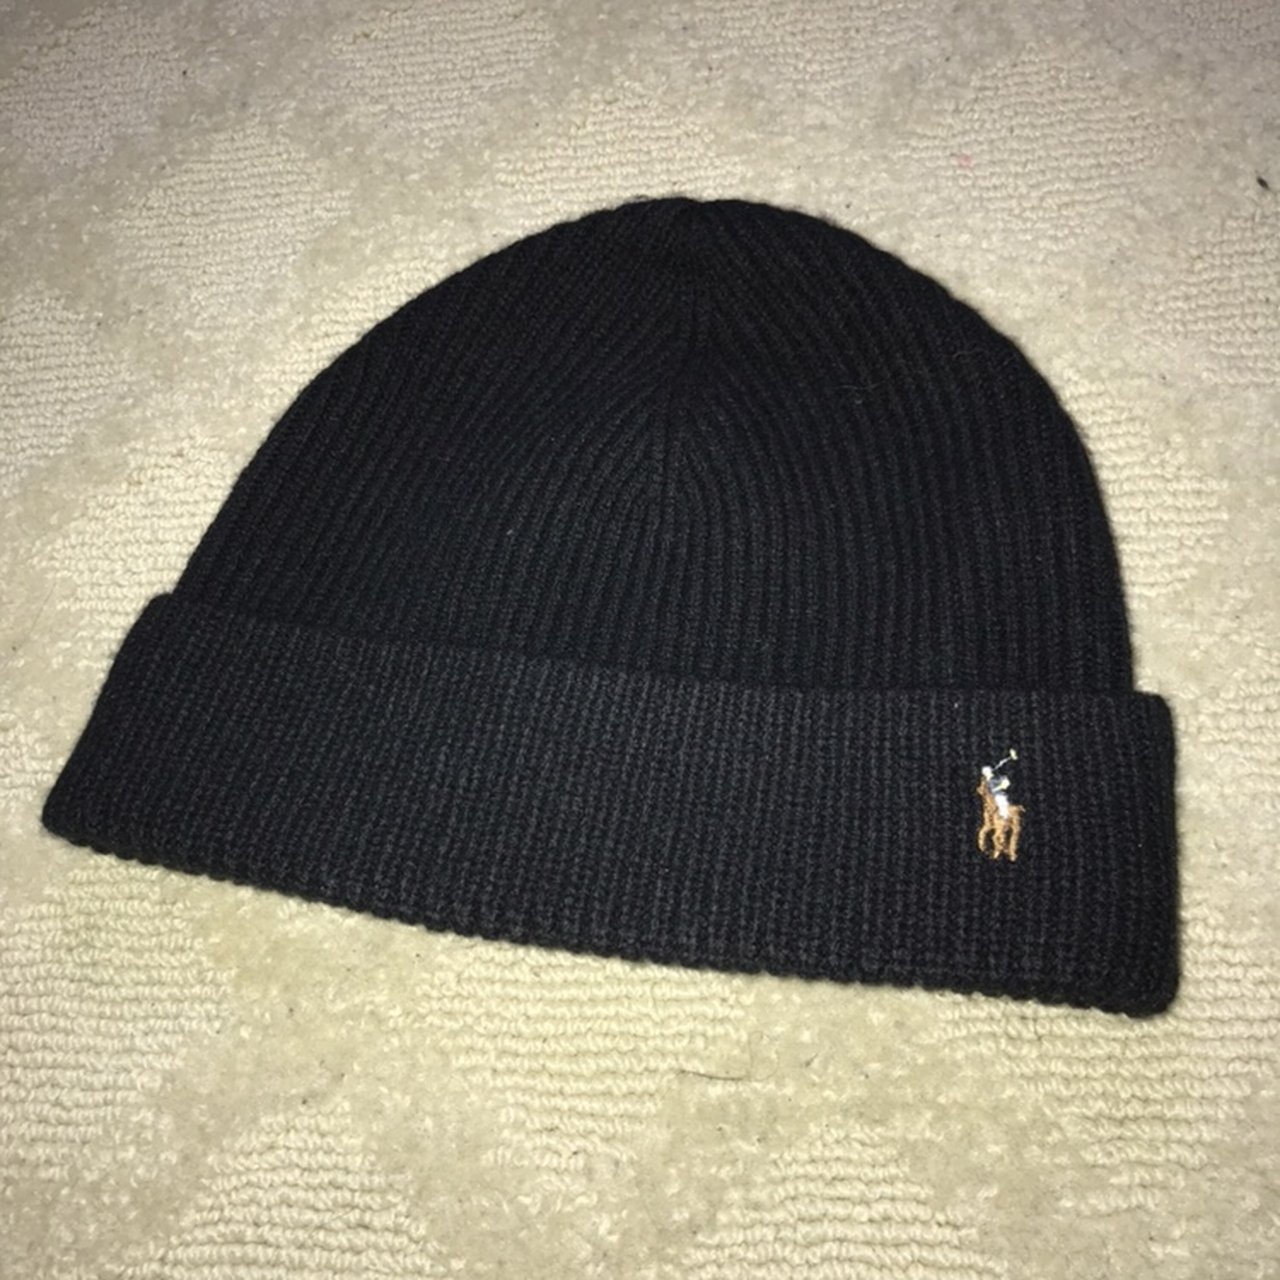 Authentic Polo RL beanie 10 10 condition - Depop 17be3188dd8